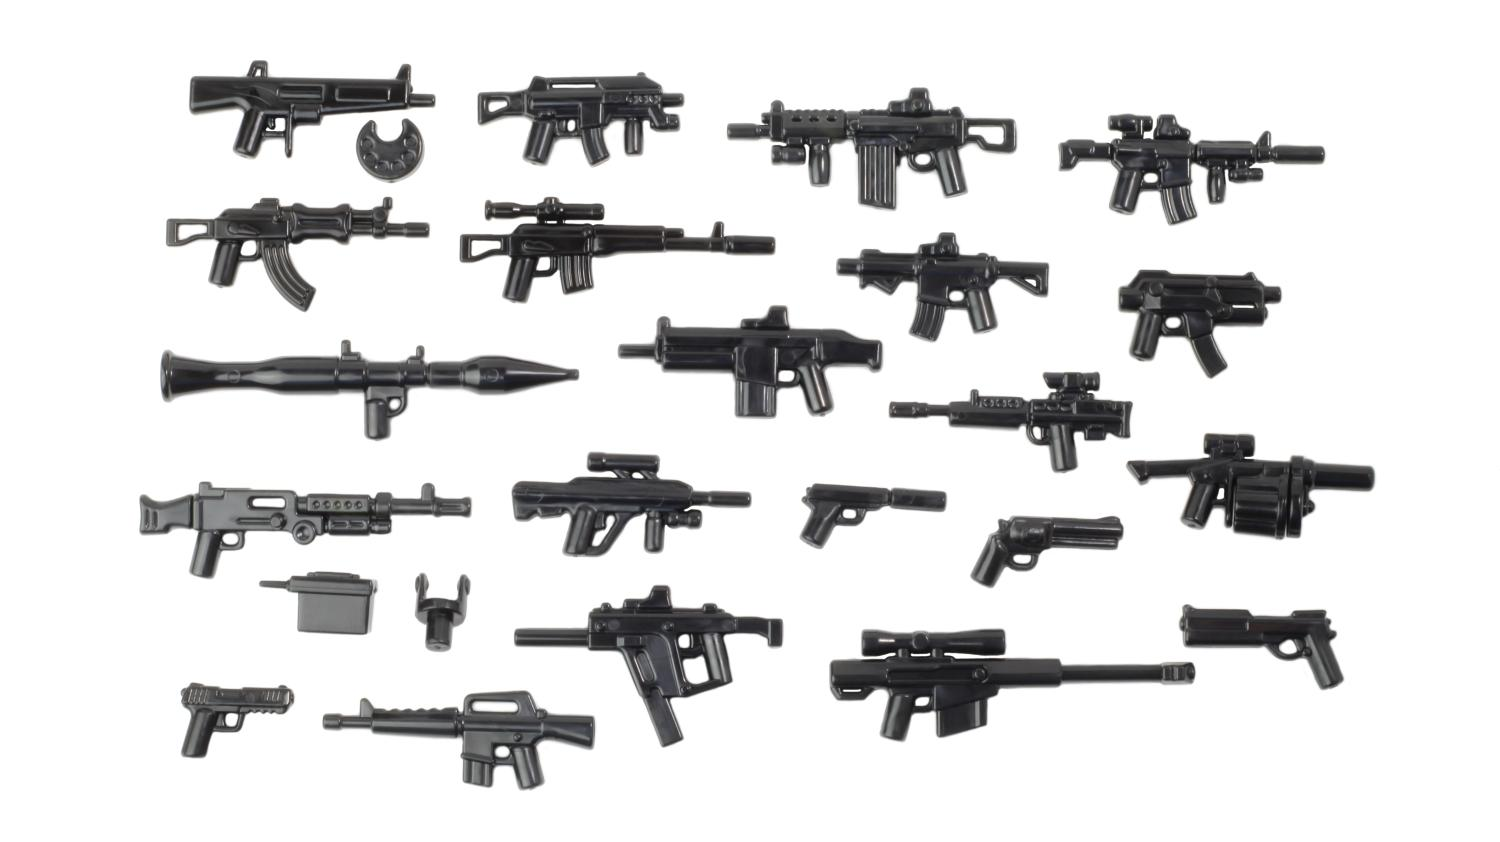 BrickArms Black UCS Pistol Weapons for Brick Minifigures